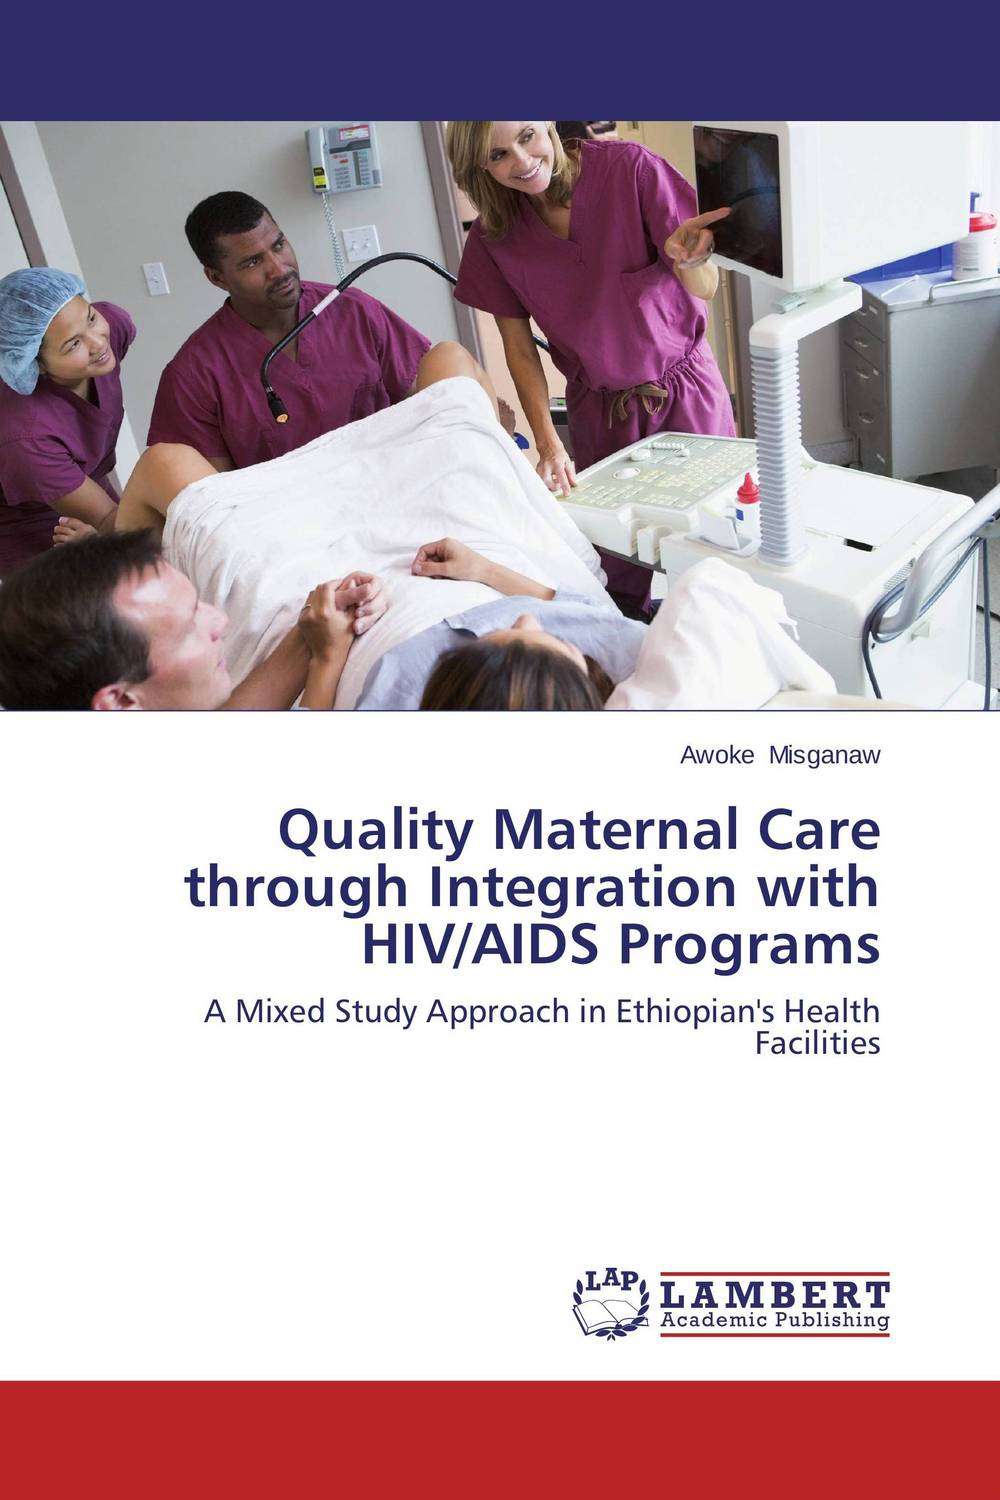 Quality Maternal Care through Integration with HIV/AIDS Programs